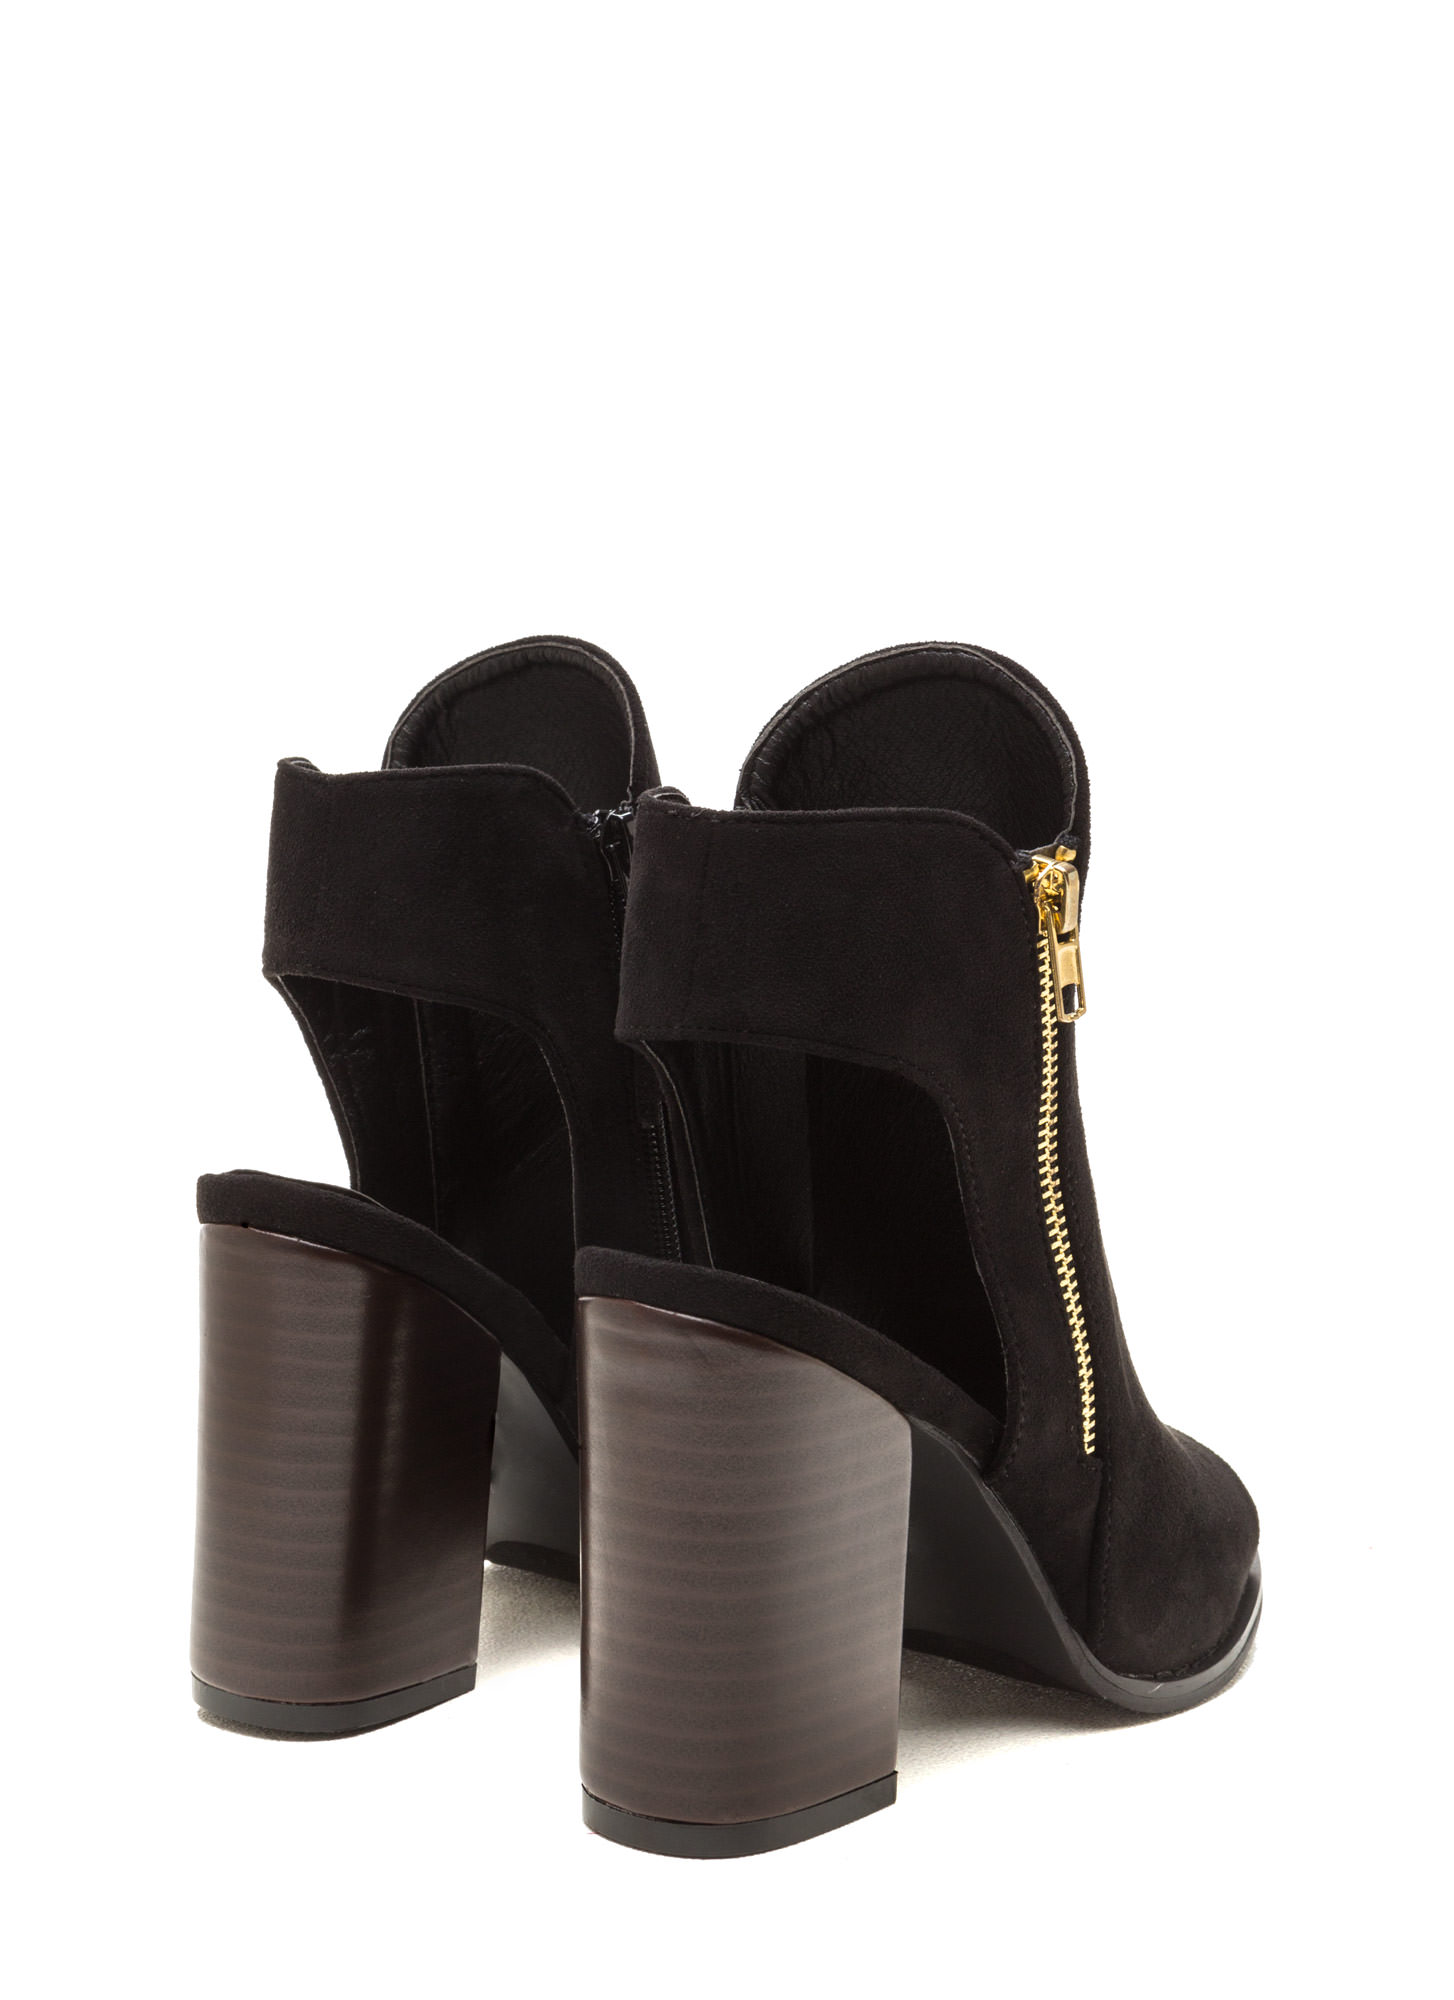 Send My Love Zippered Cut-Out Booties BLACK